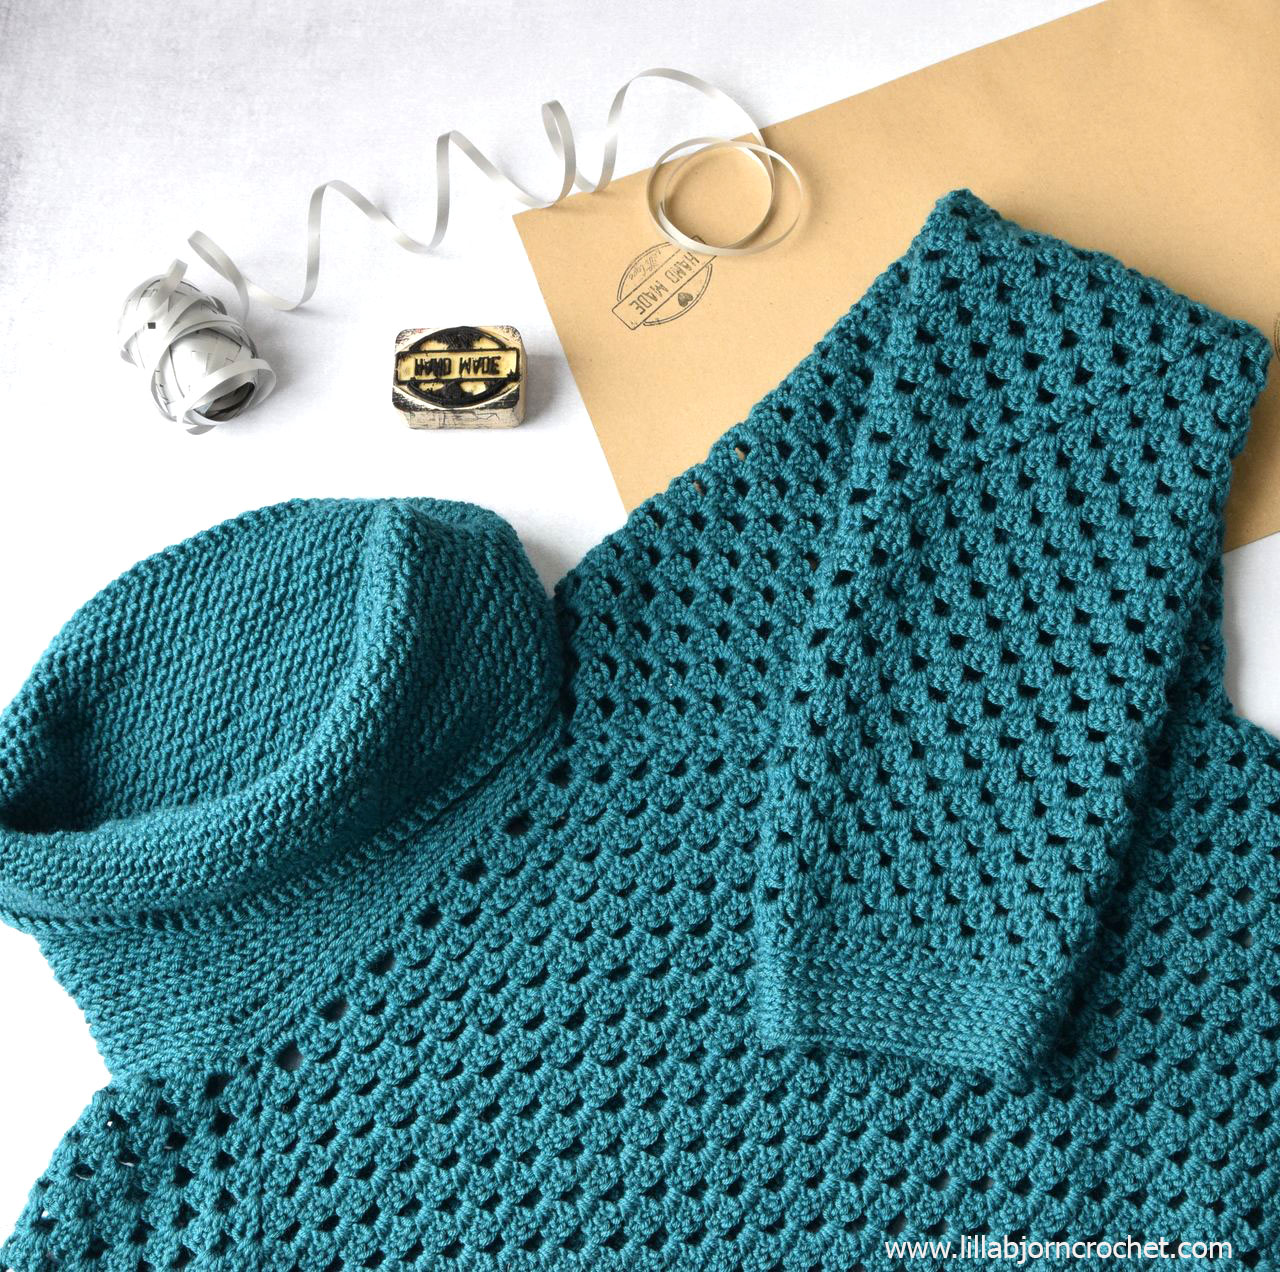 594c0ec7d Today I would like to show you my hot off the hook sweater. I made it  following the video course Get Squared by Jenny King – a crochet designer  from ...